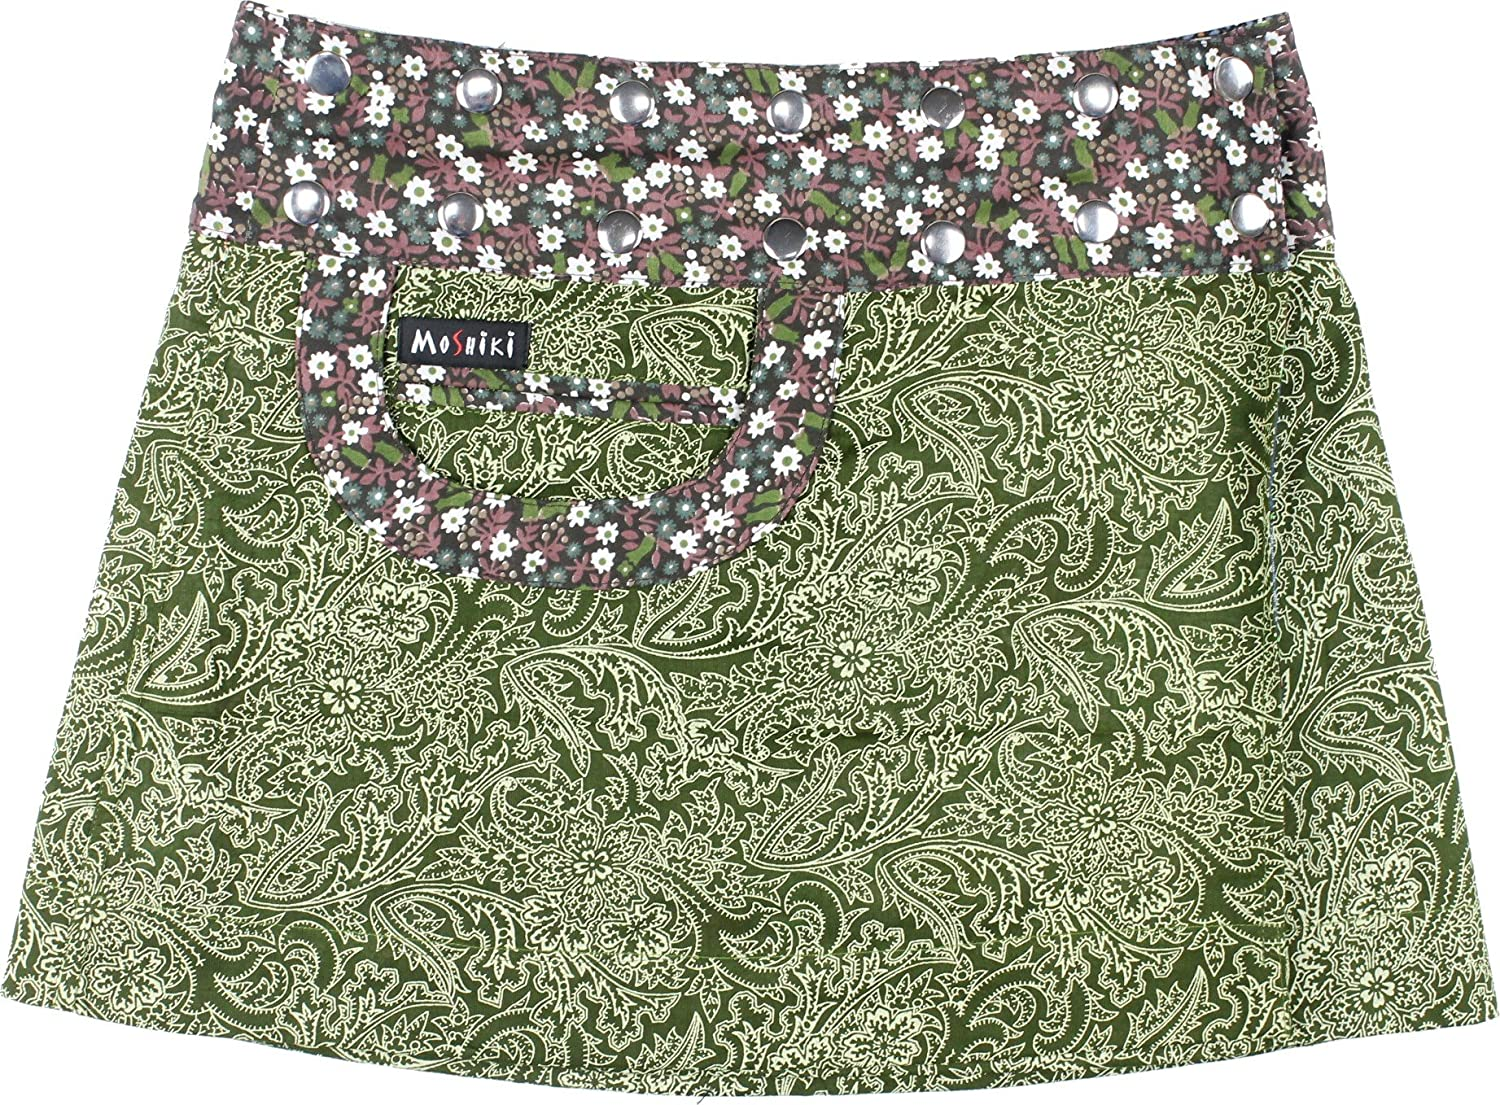 Moshiki Hot Cookie WENDE- Bagel Short Adjustable Wrap around available in different colours and designs available